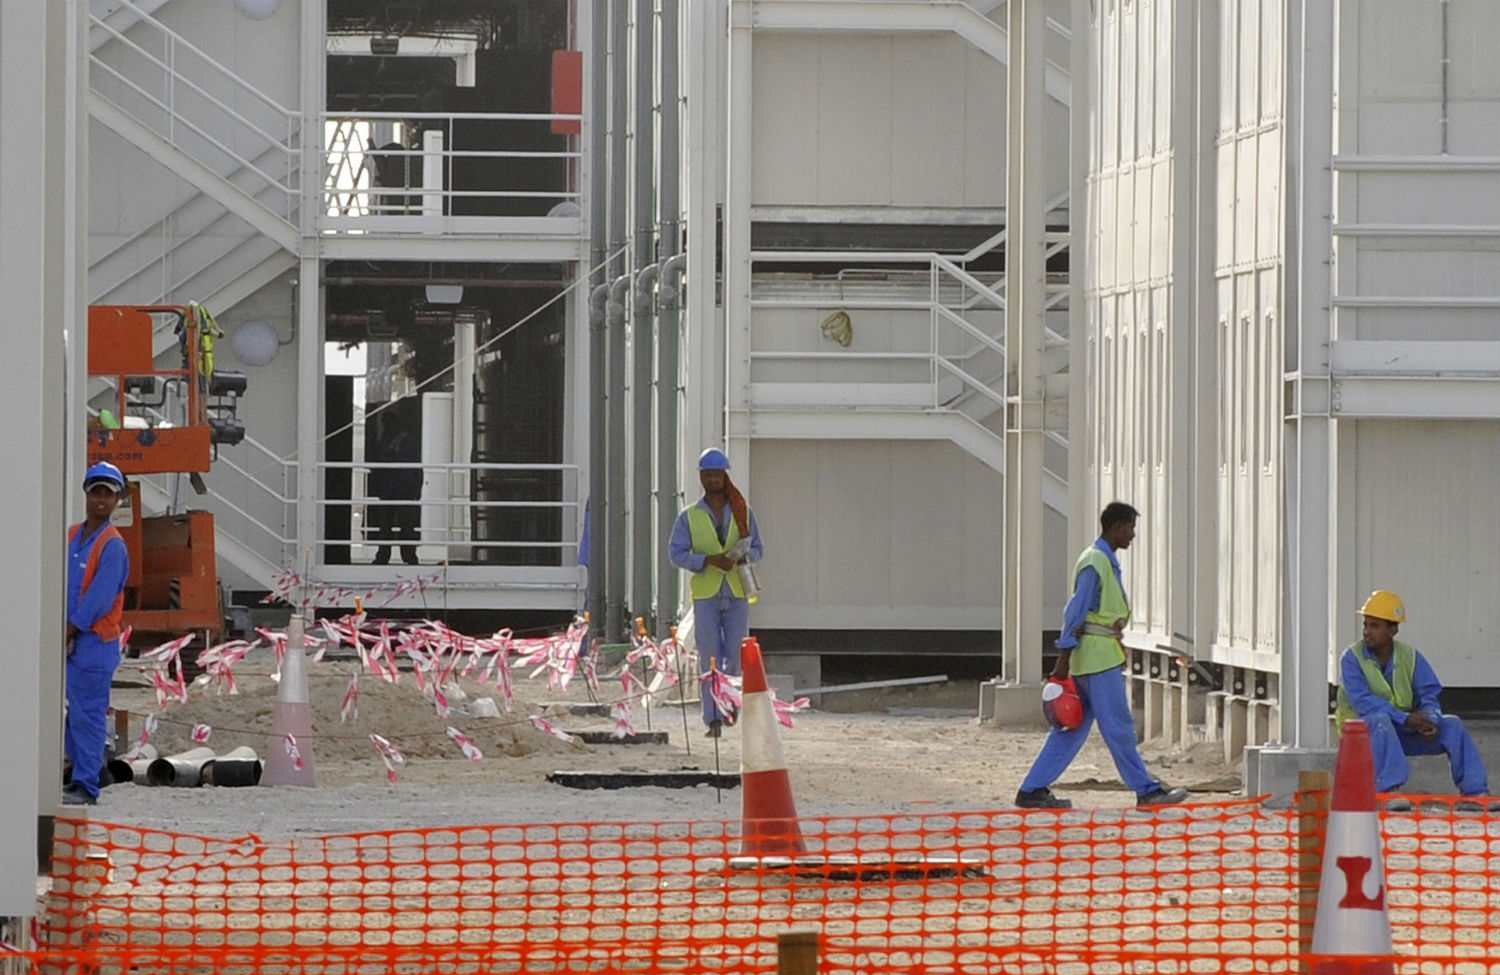 Construction-workers-in-Abu-Dhabi